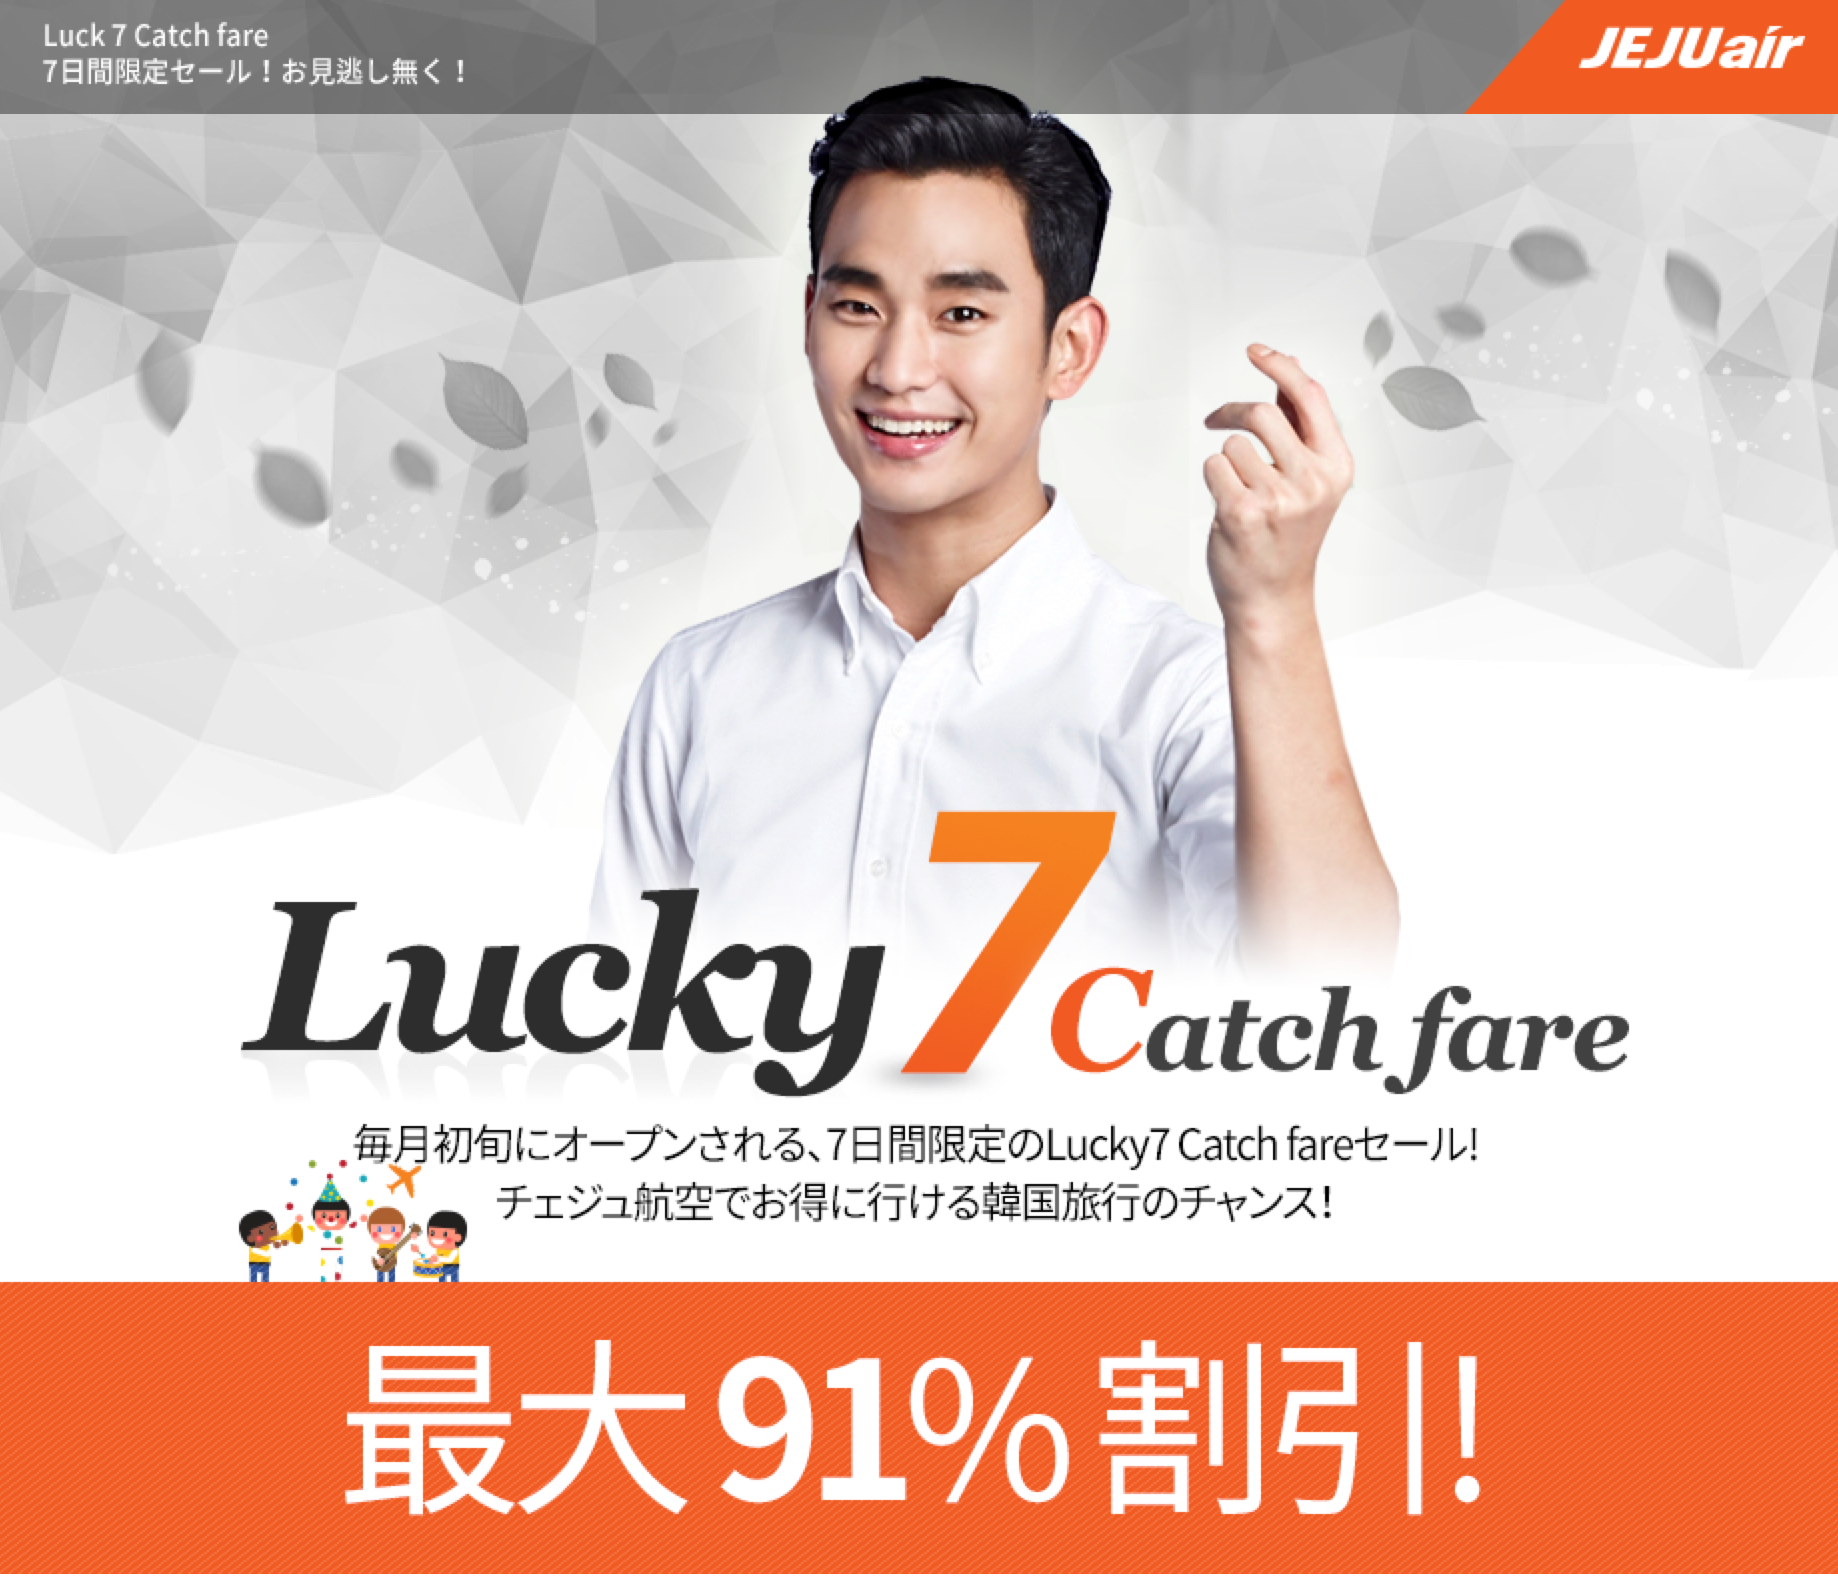 jejusale151208_20151209100916cfe.png